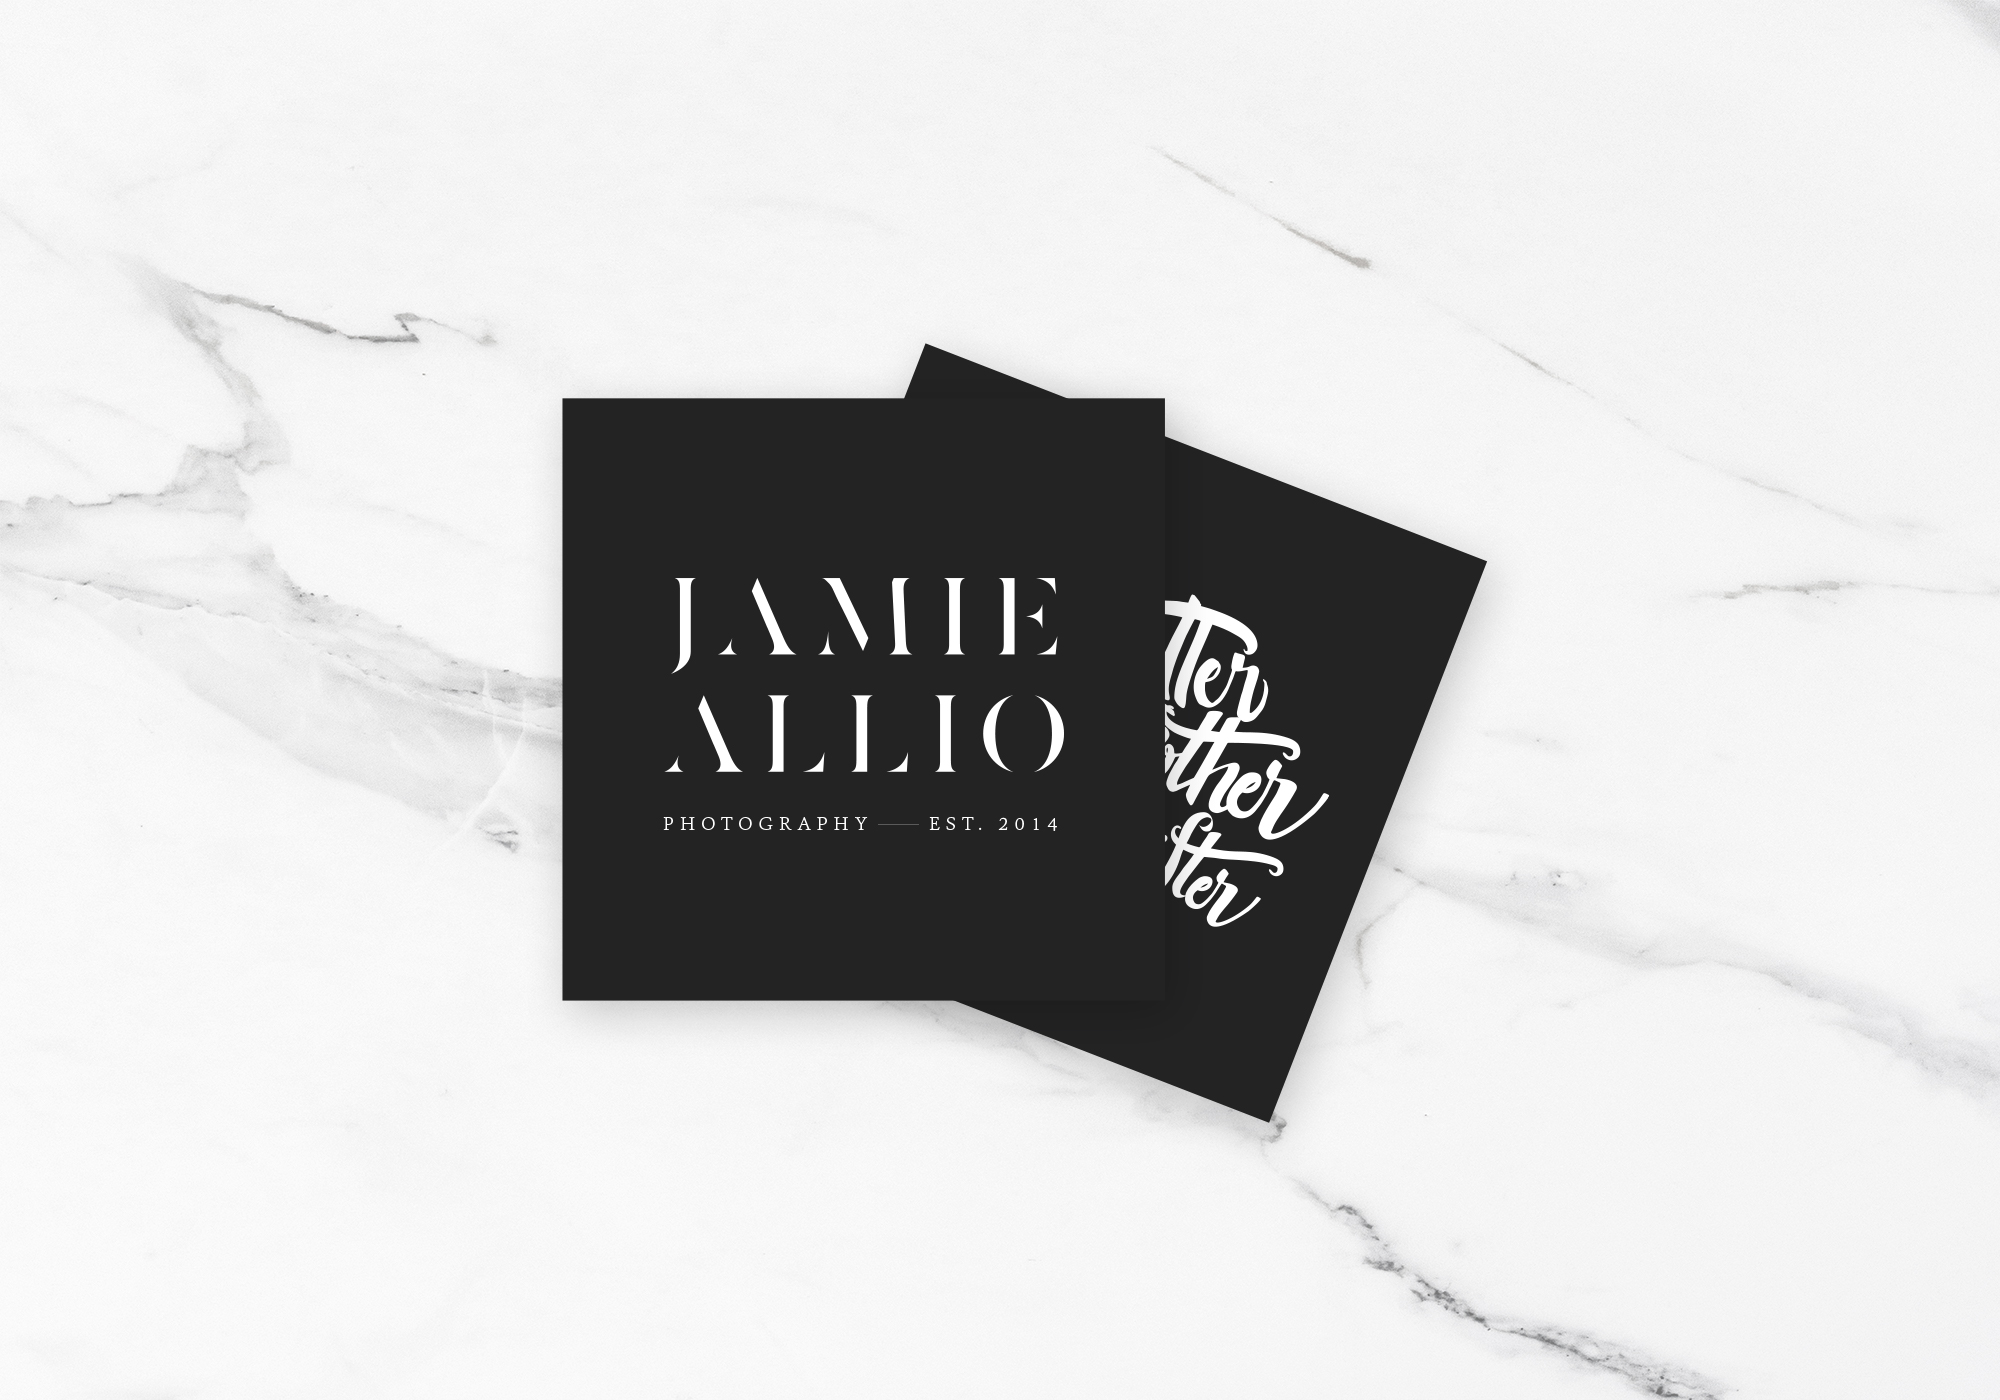 Business Card Design for Brand Identity Design for Photographer Jamie Allio by Amarie Design Co.